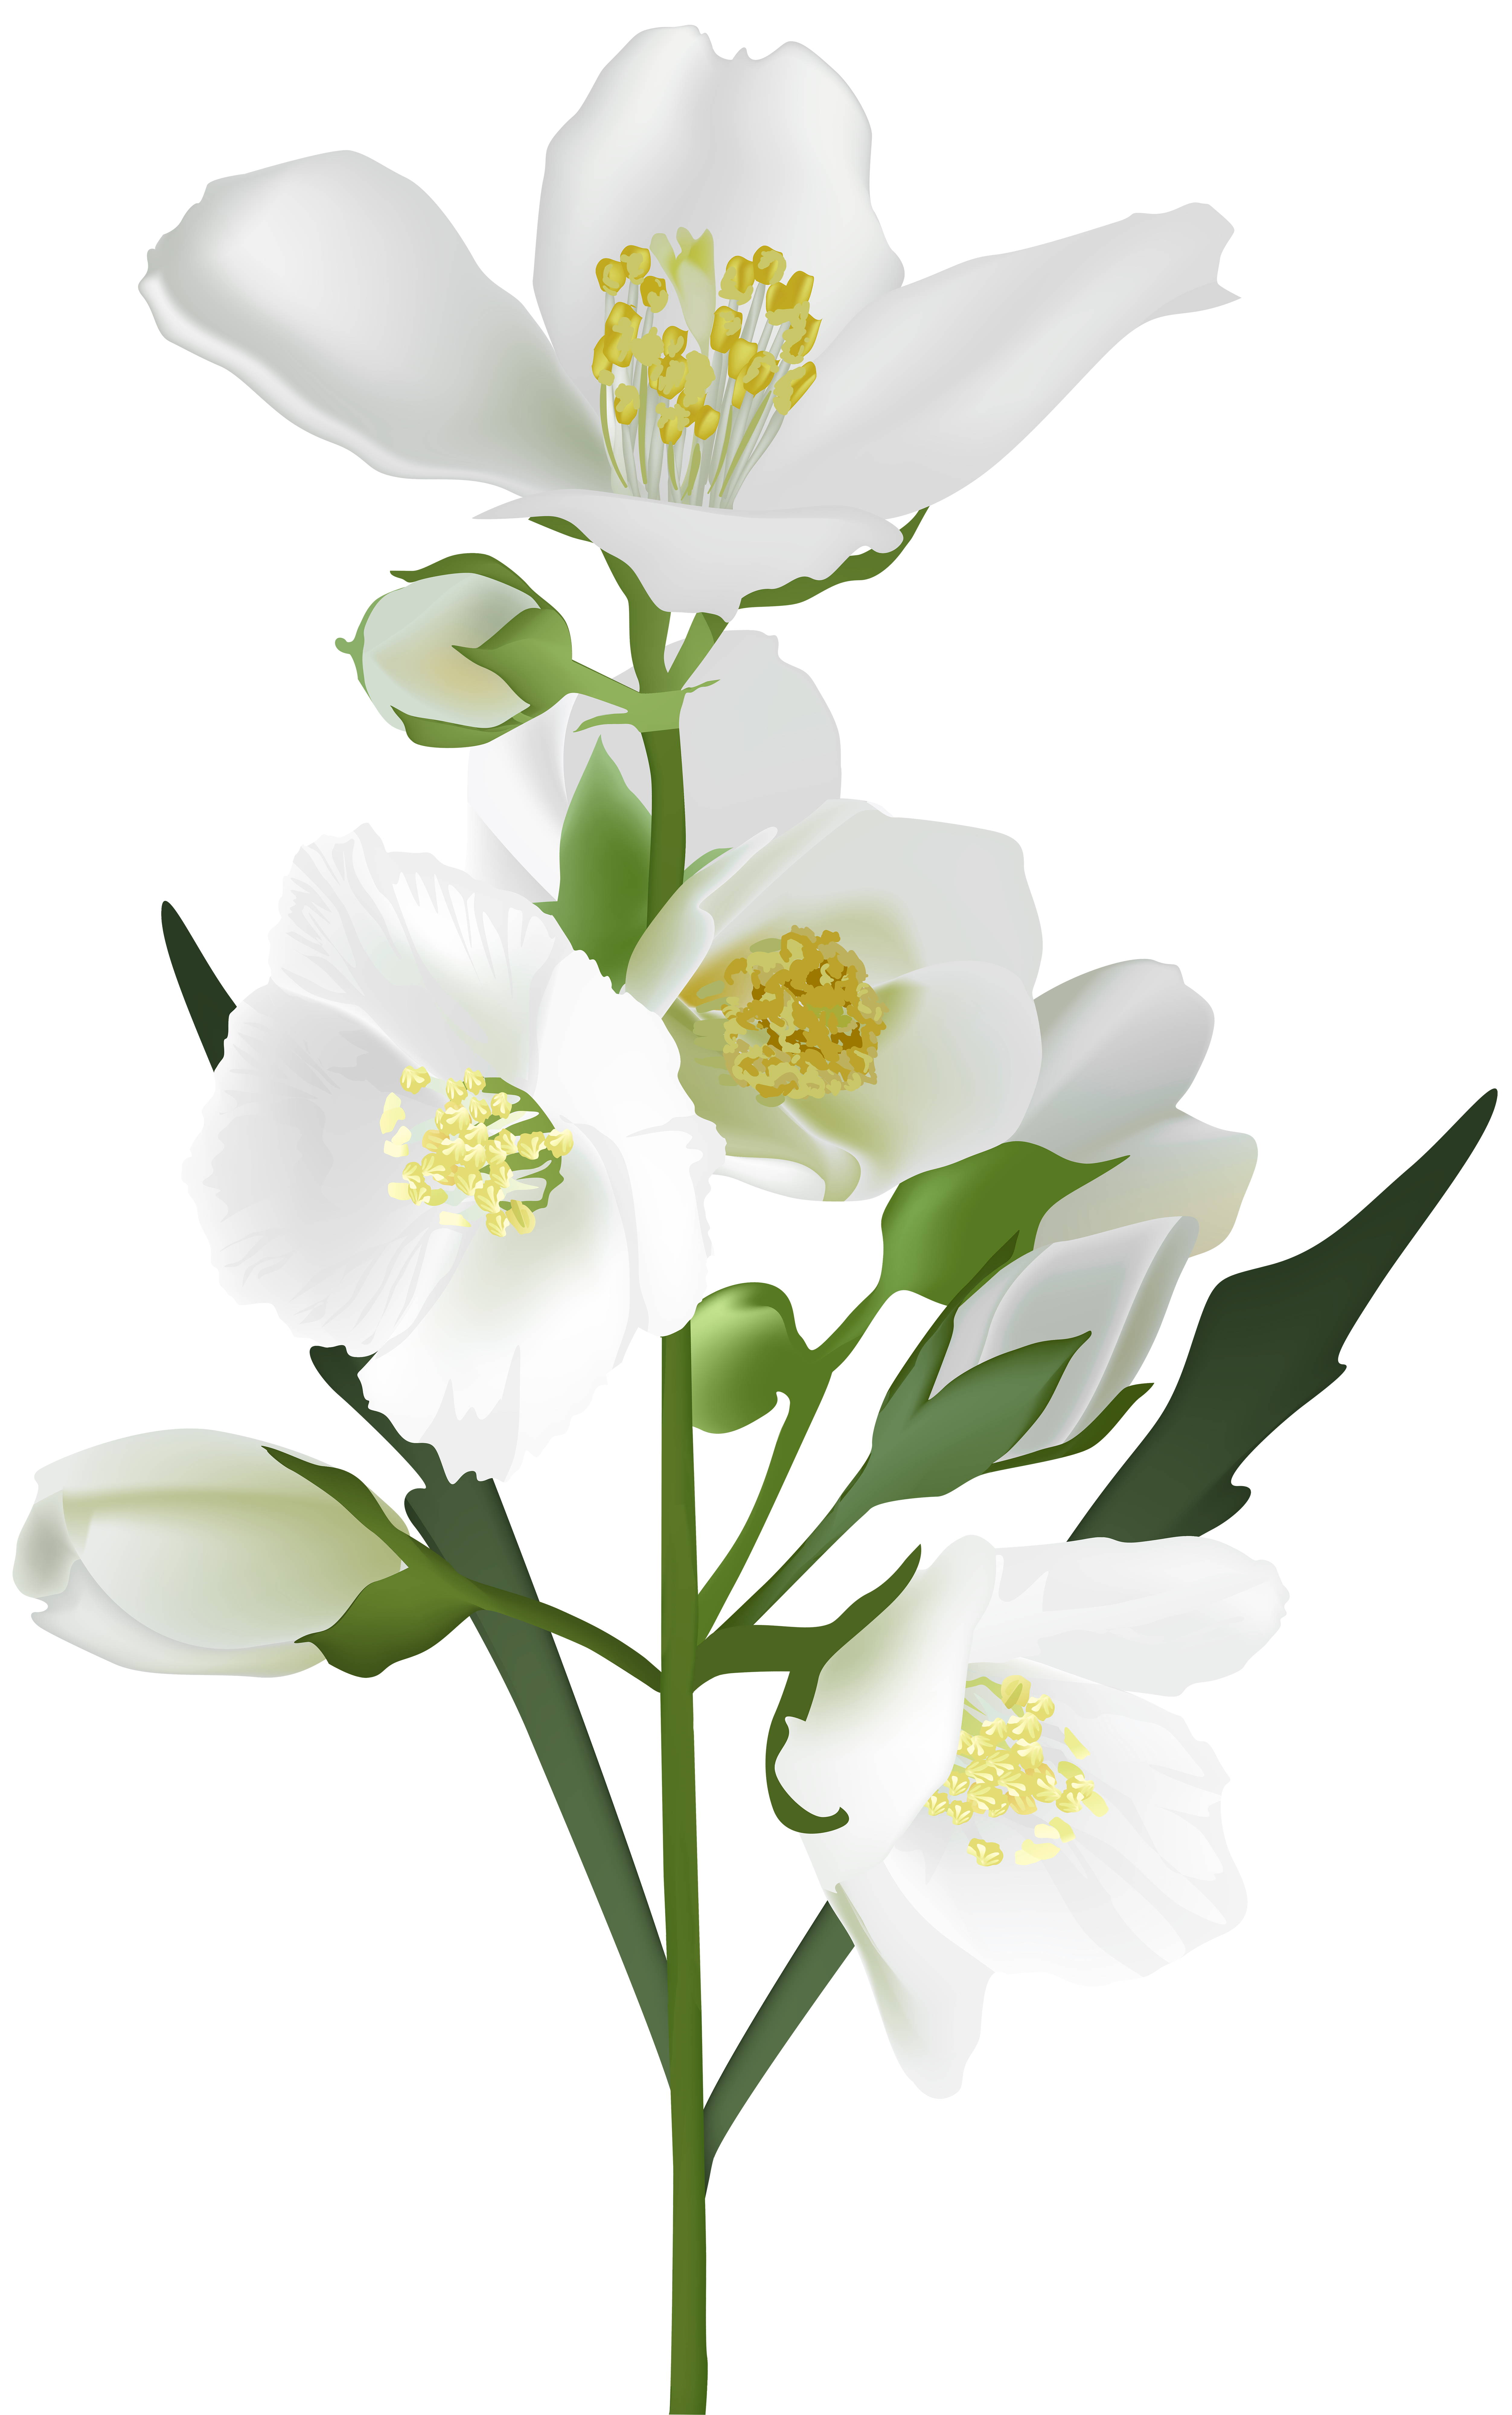 White flower png. Clip art image gallery